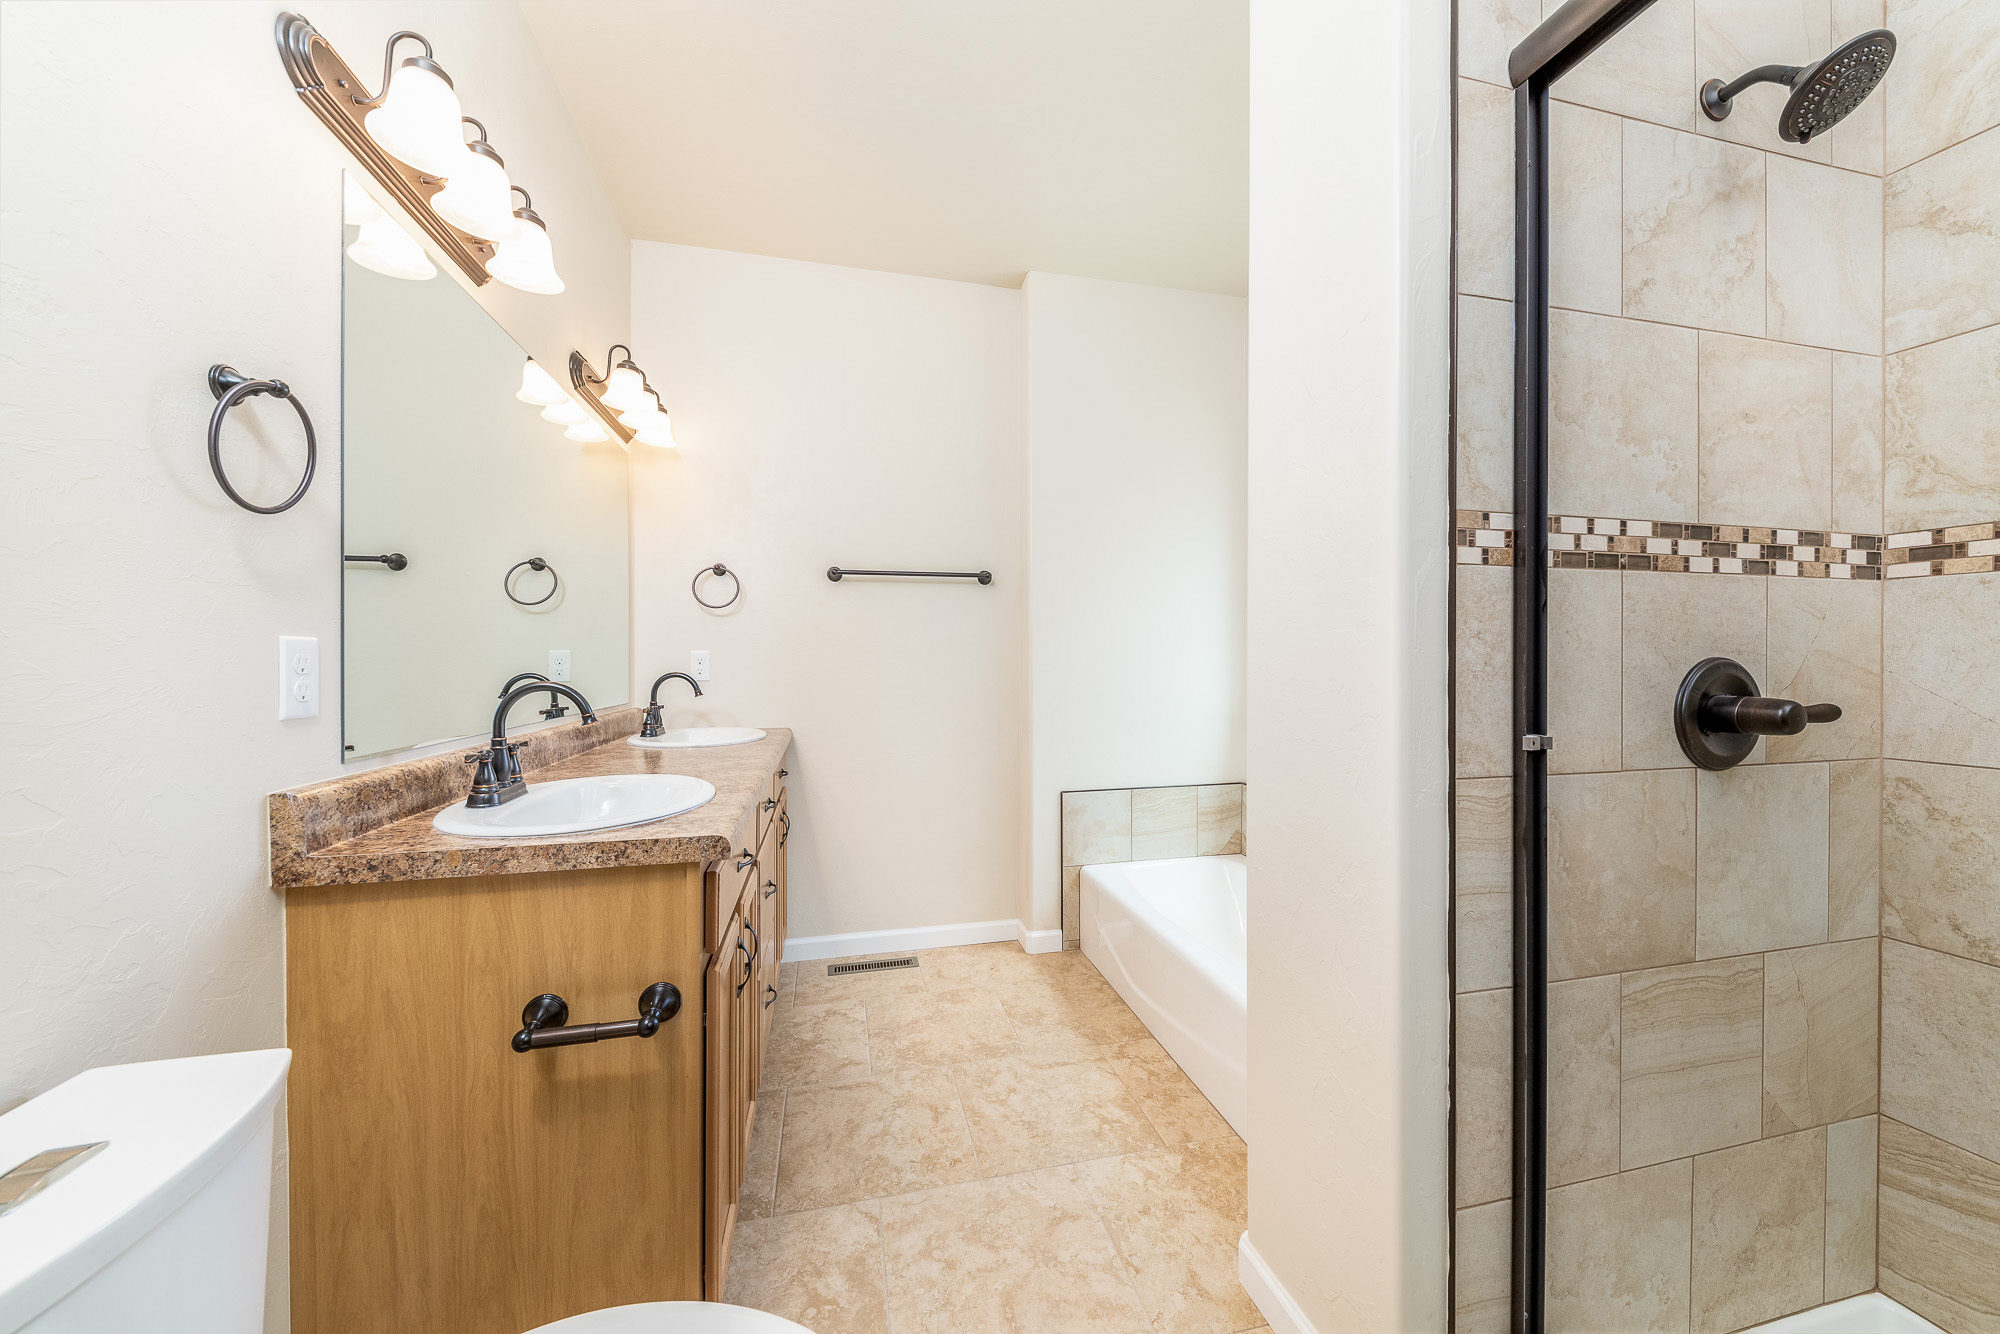 227 Howard Fork Ave, Montrose CO Real Estate - Bathroom